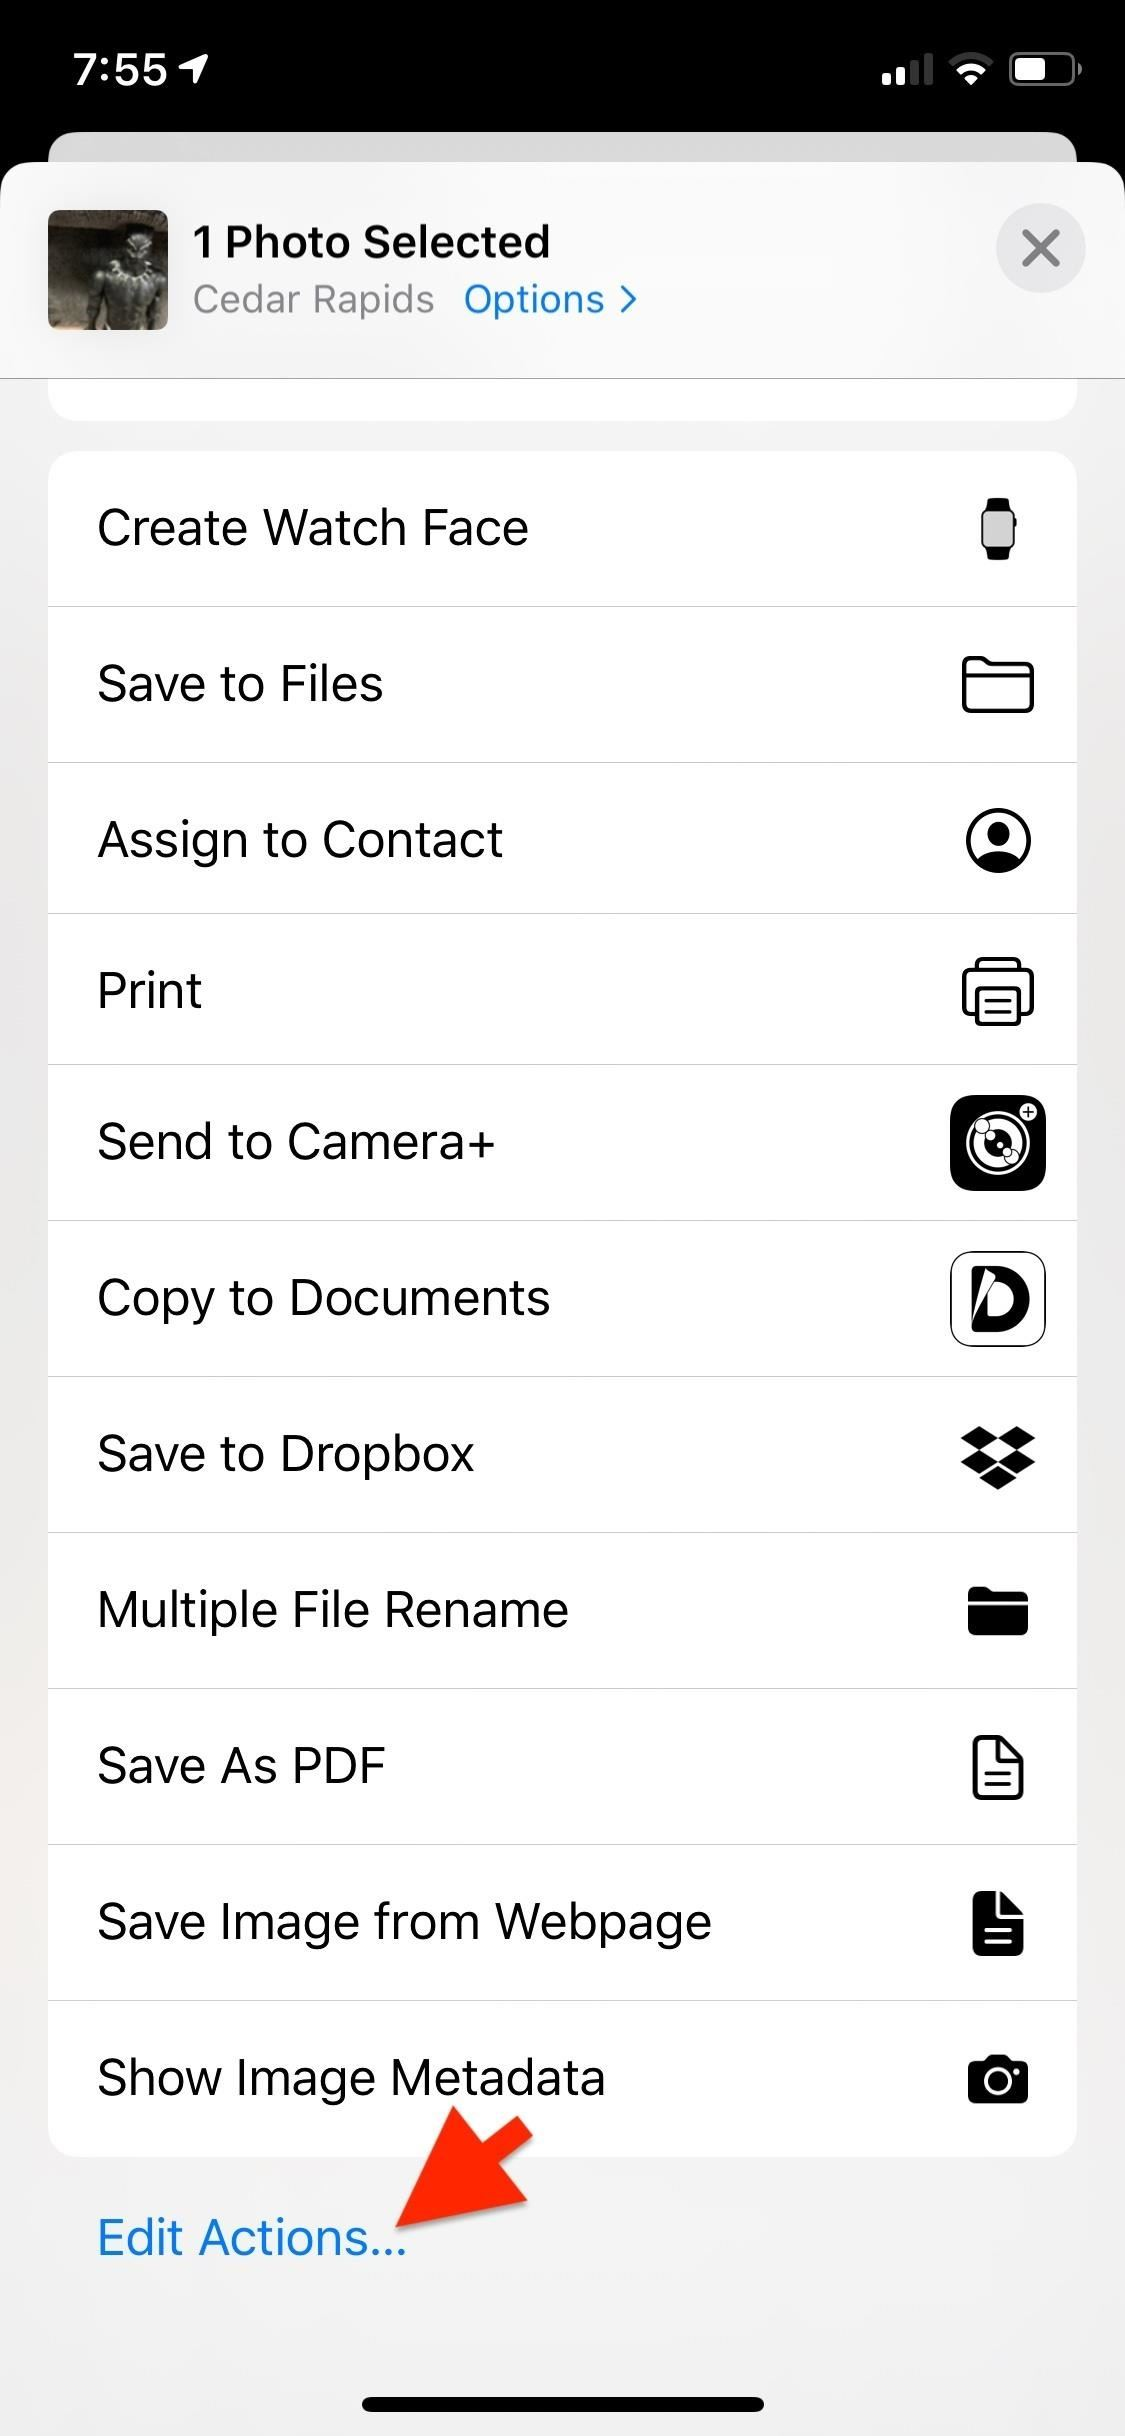 How to Add Custom Shortcuts to Your iPhone's Share Sheet & Reorganize Them for Quicker Access